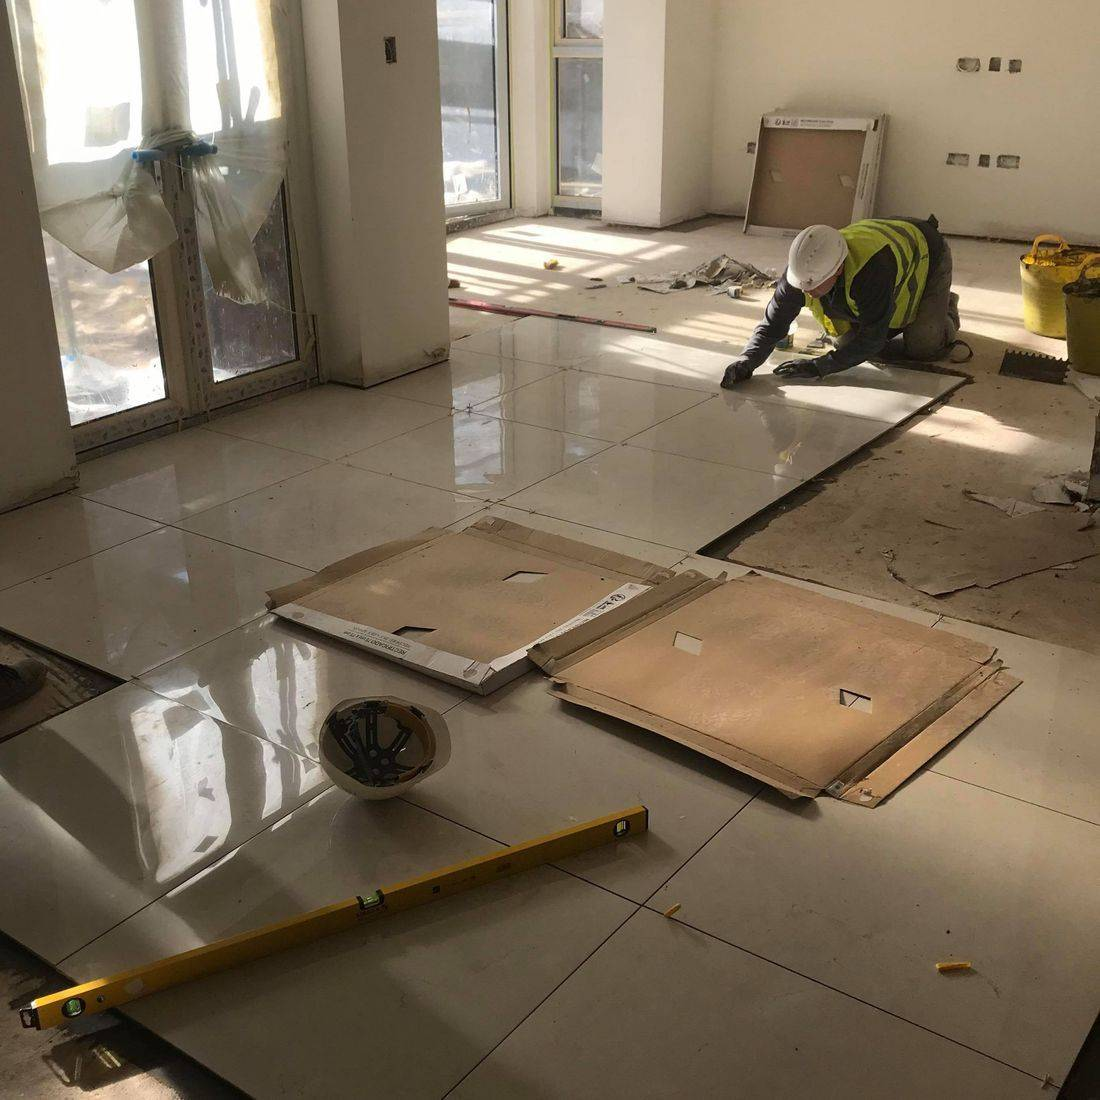 Floor tiling in progress